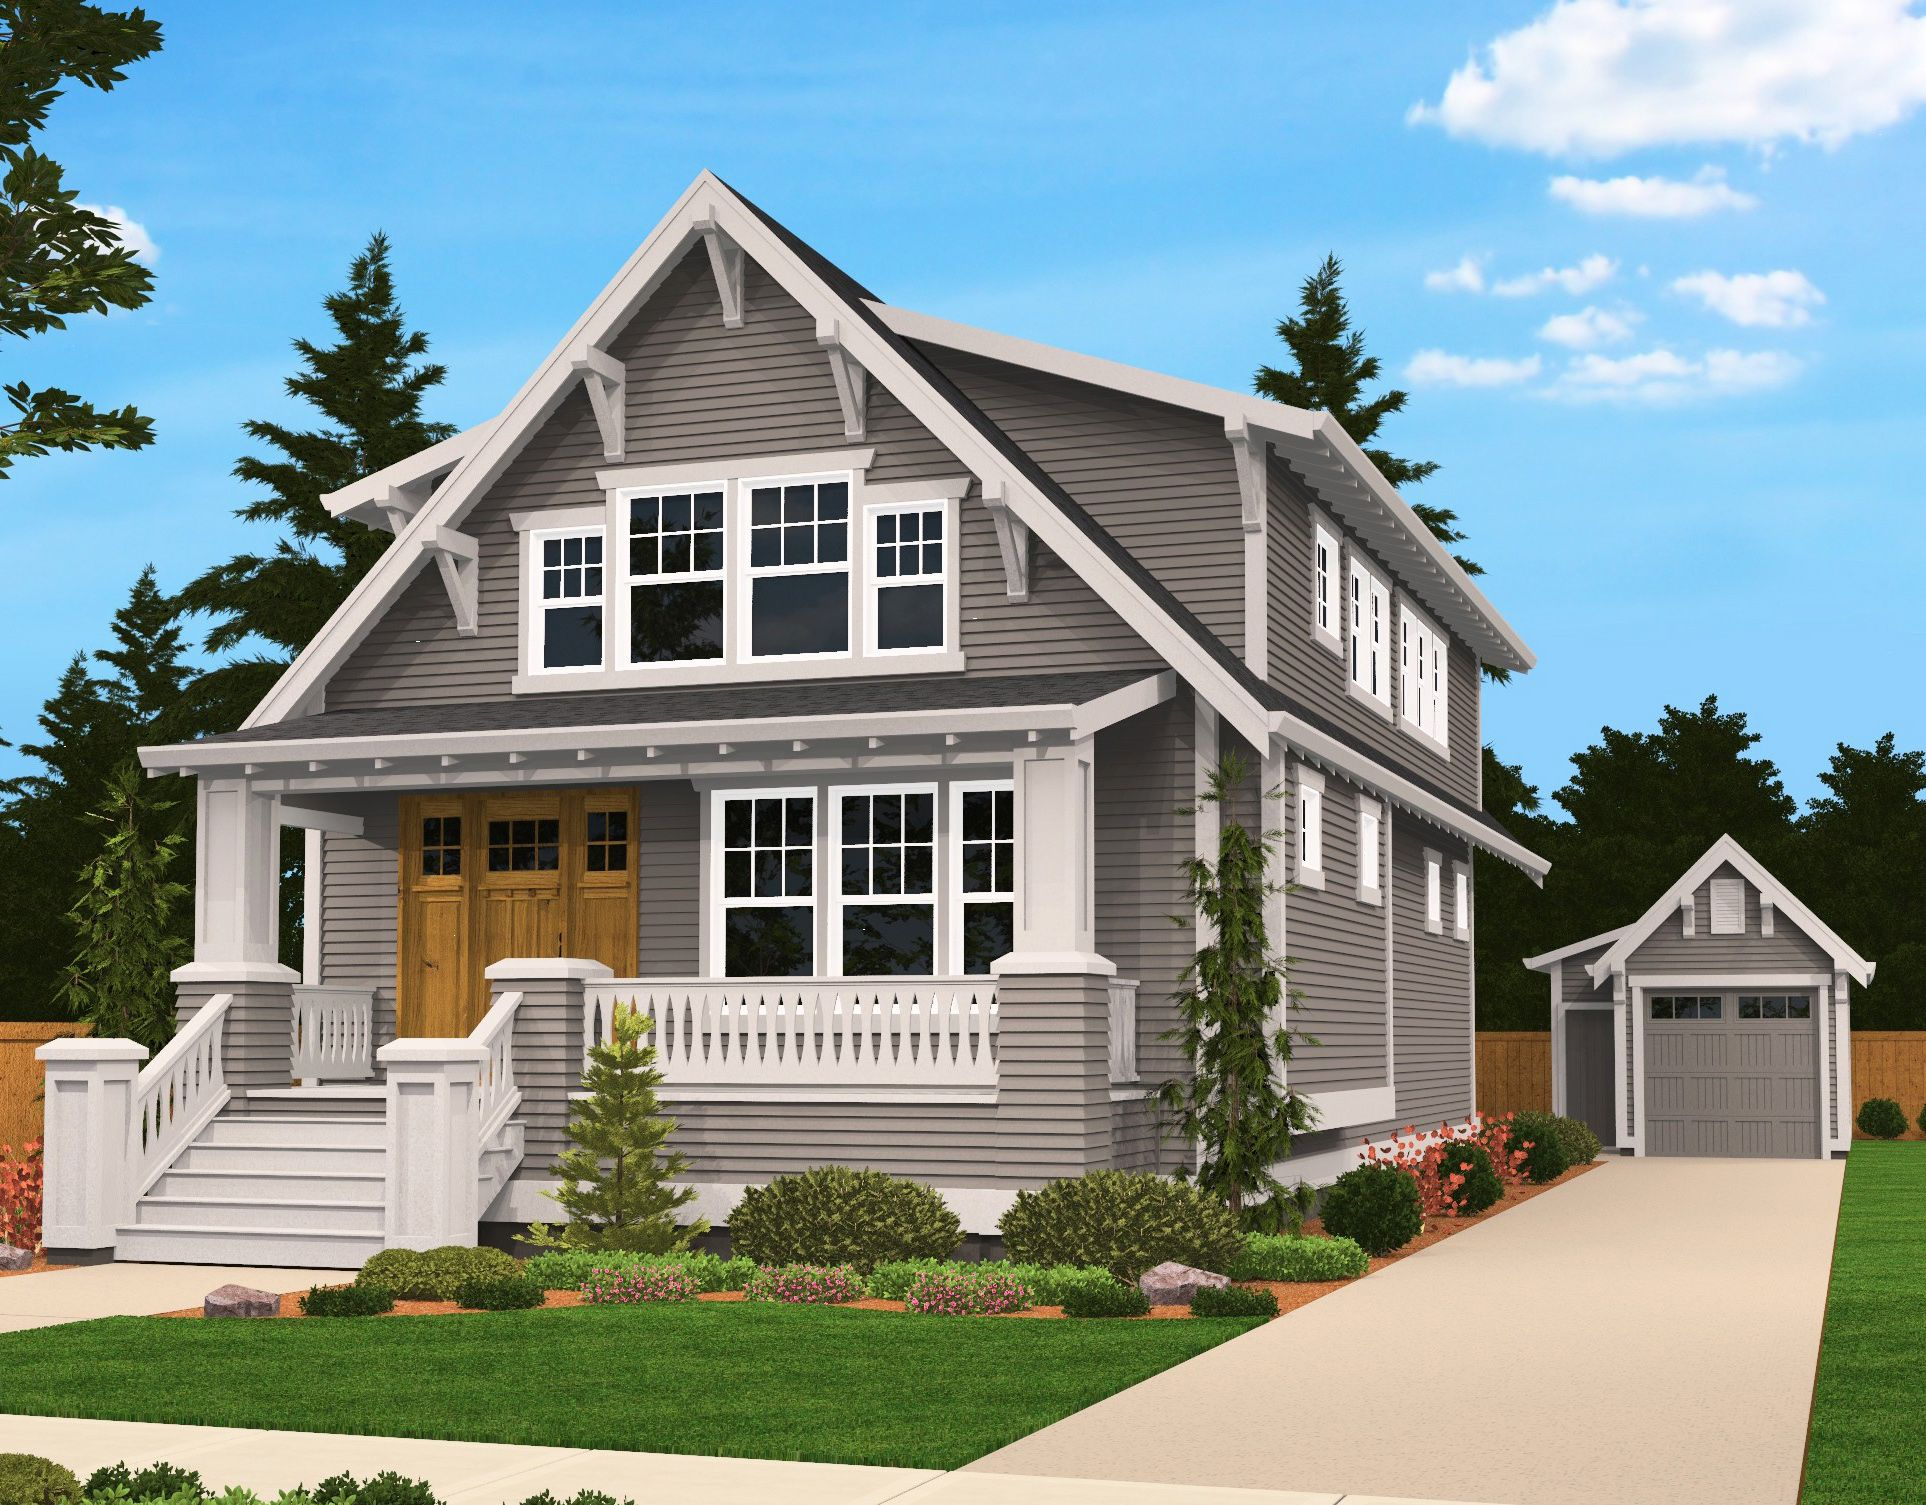 Plan 85058ms Handsome Bungalow House Plan Bungalow